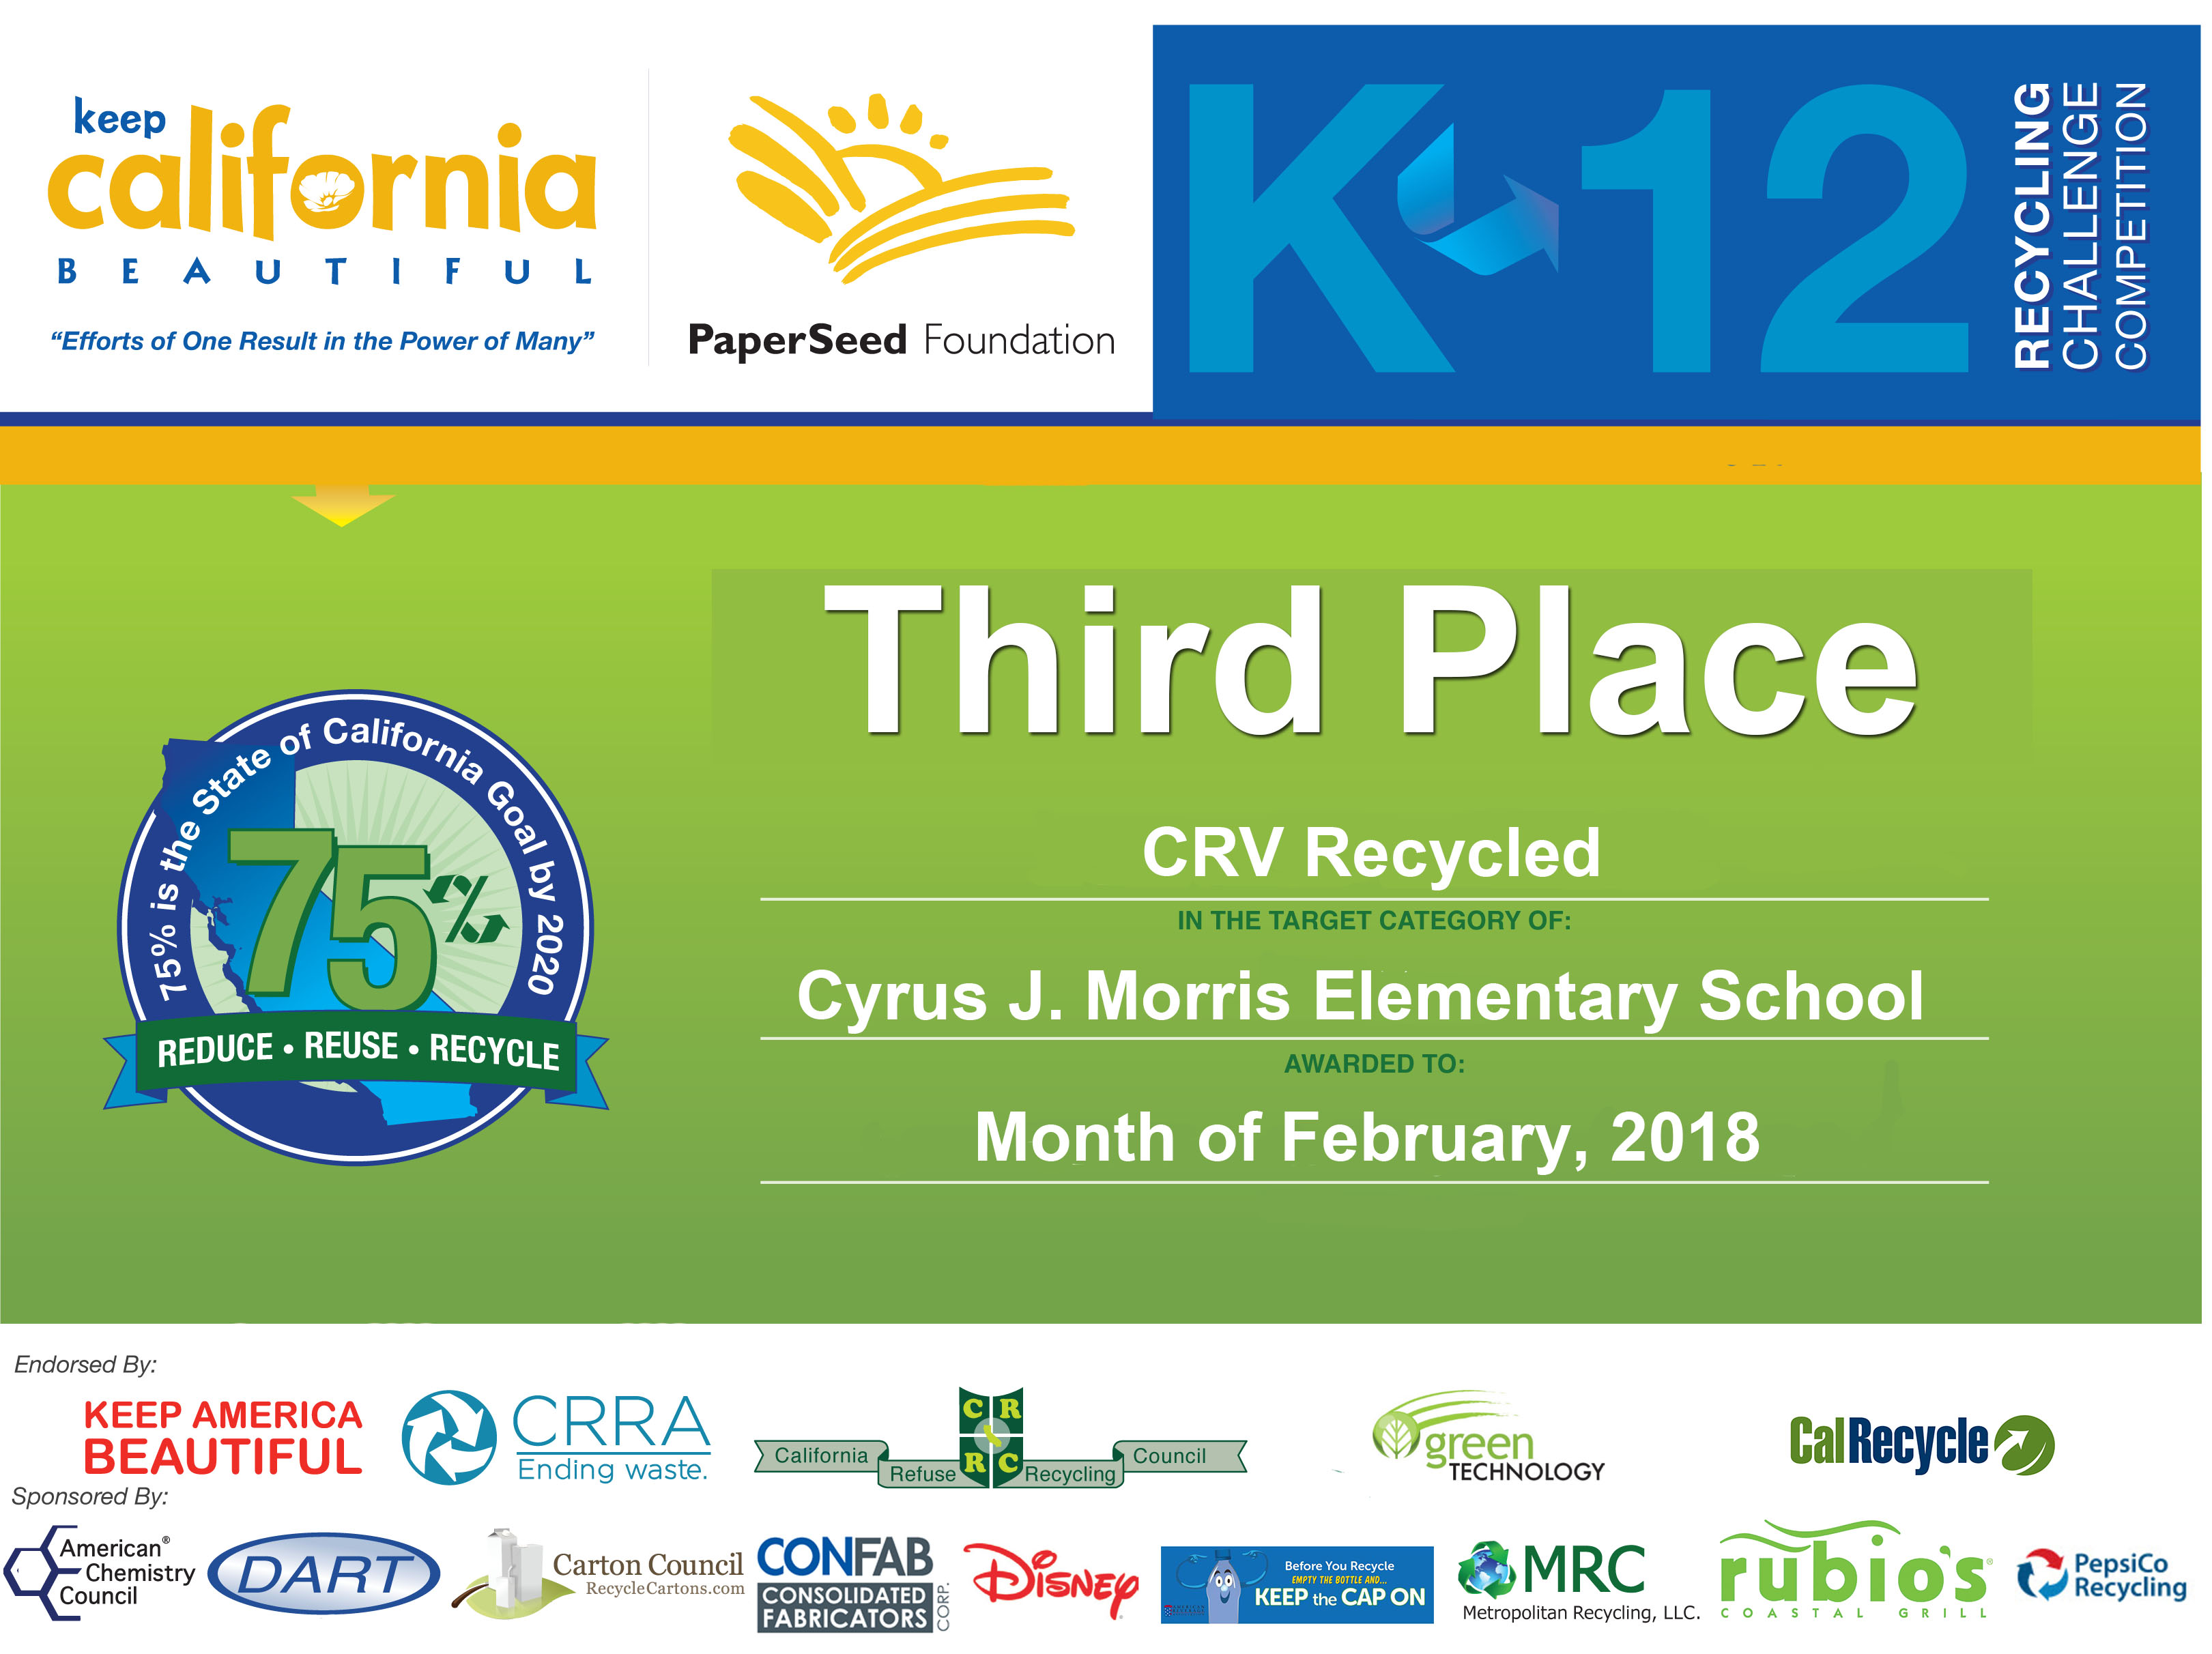 Cyrus J Morris Elementary School CRV Recycled 2018 3rd Place